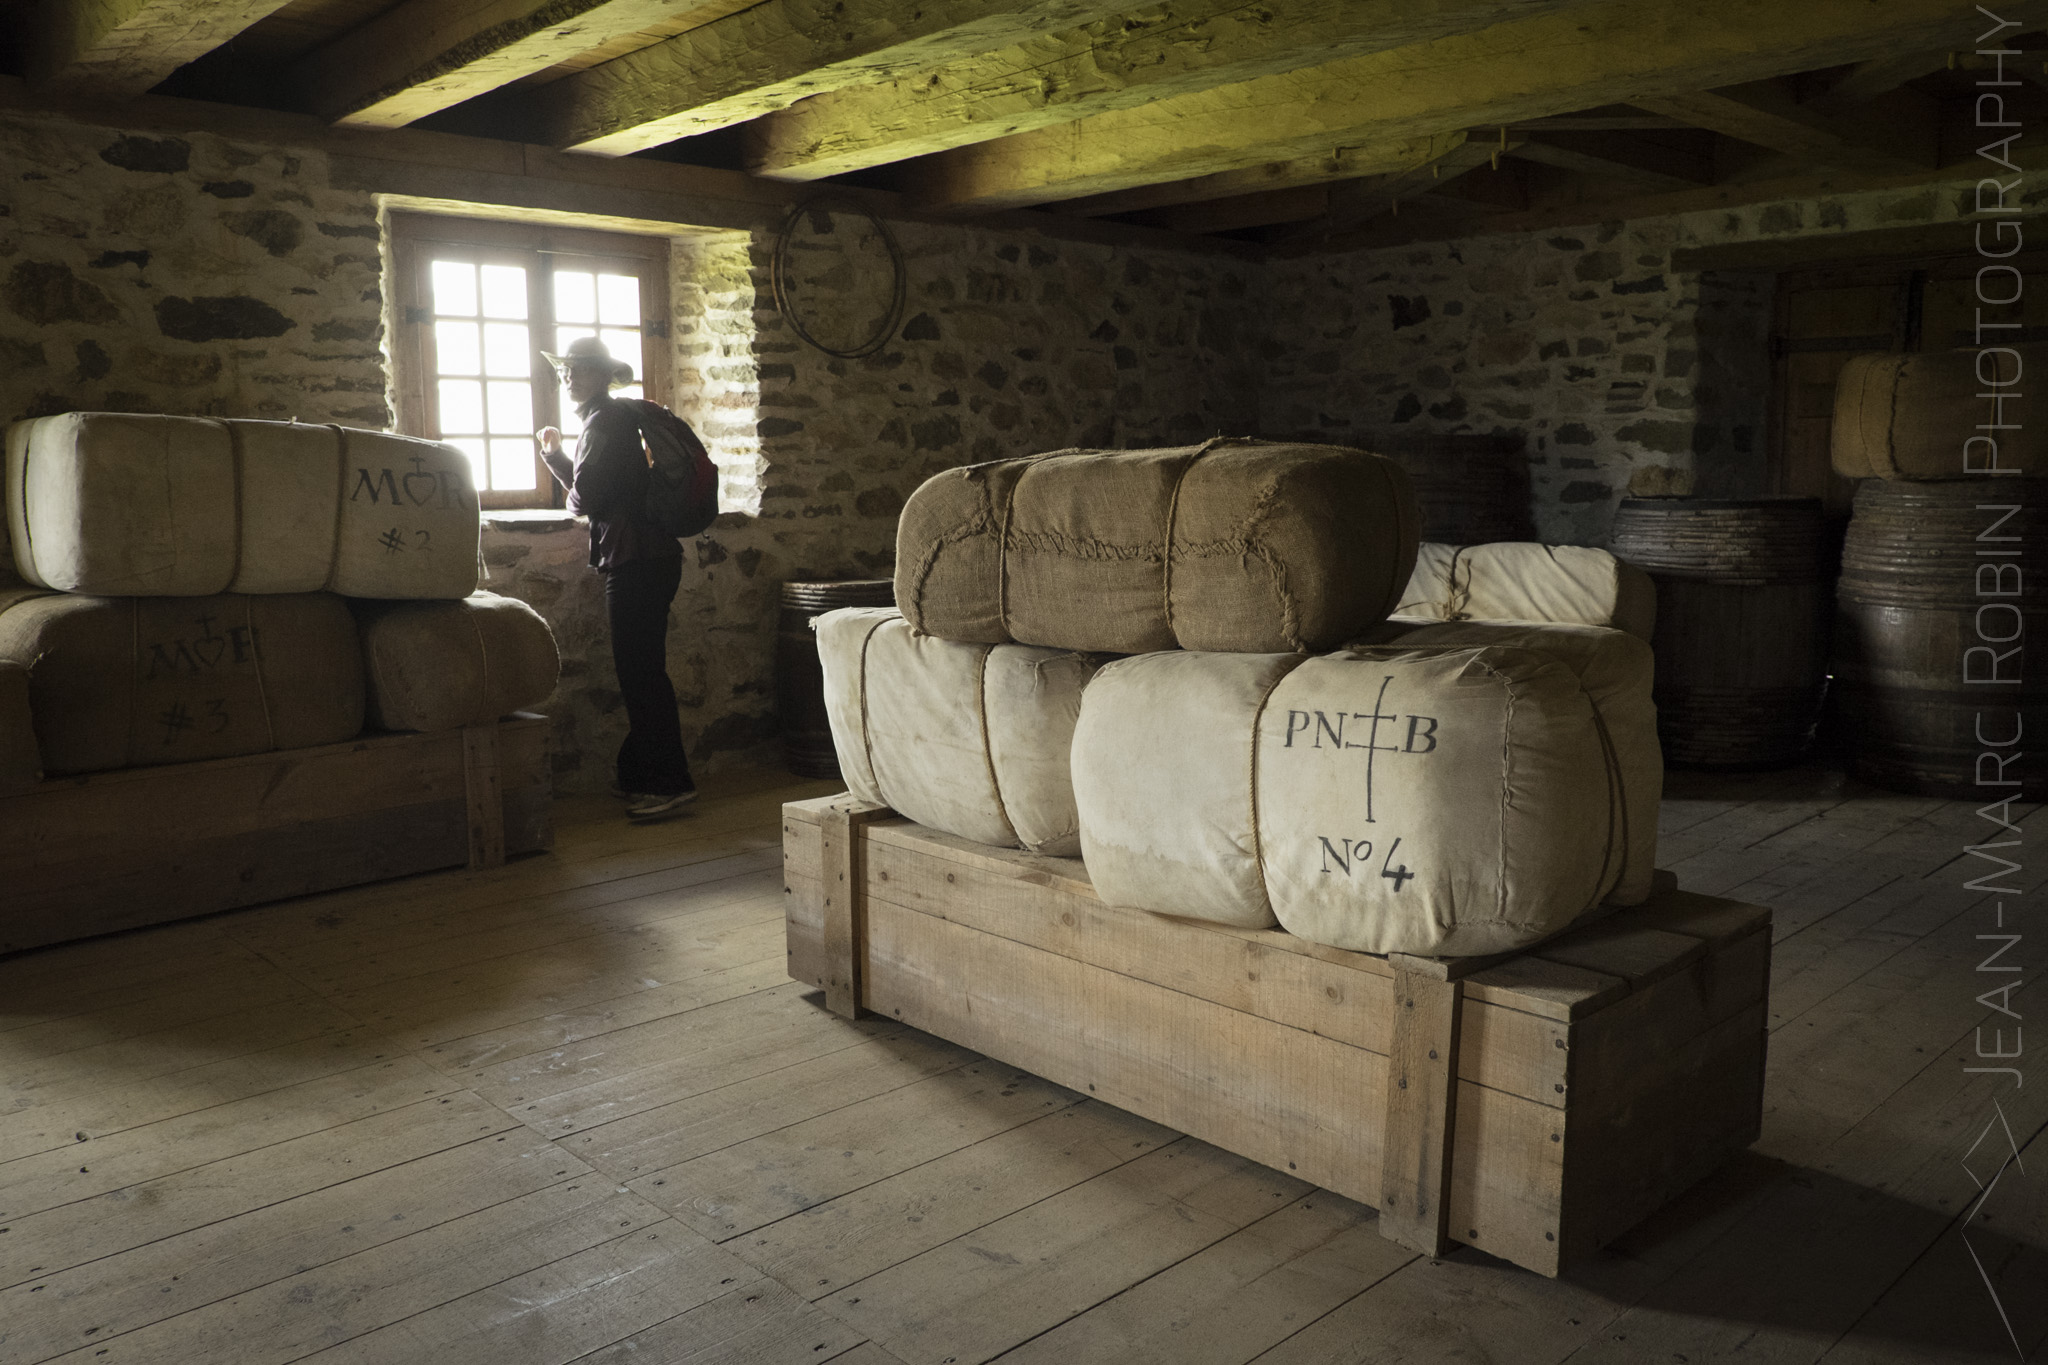 Indoors at Louisbourg